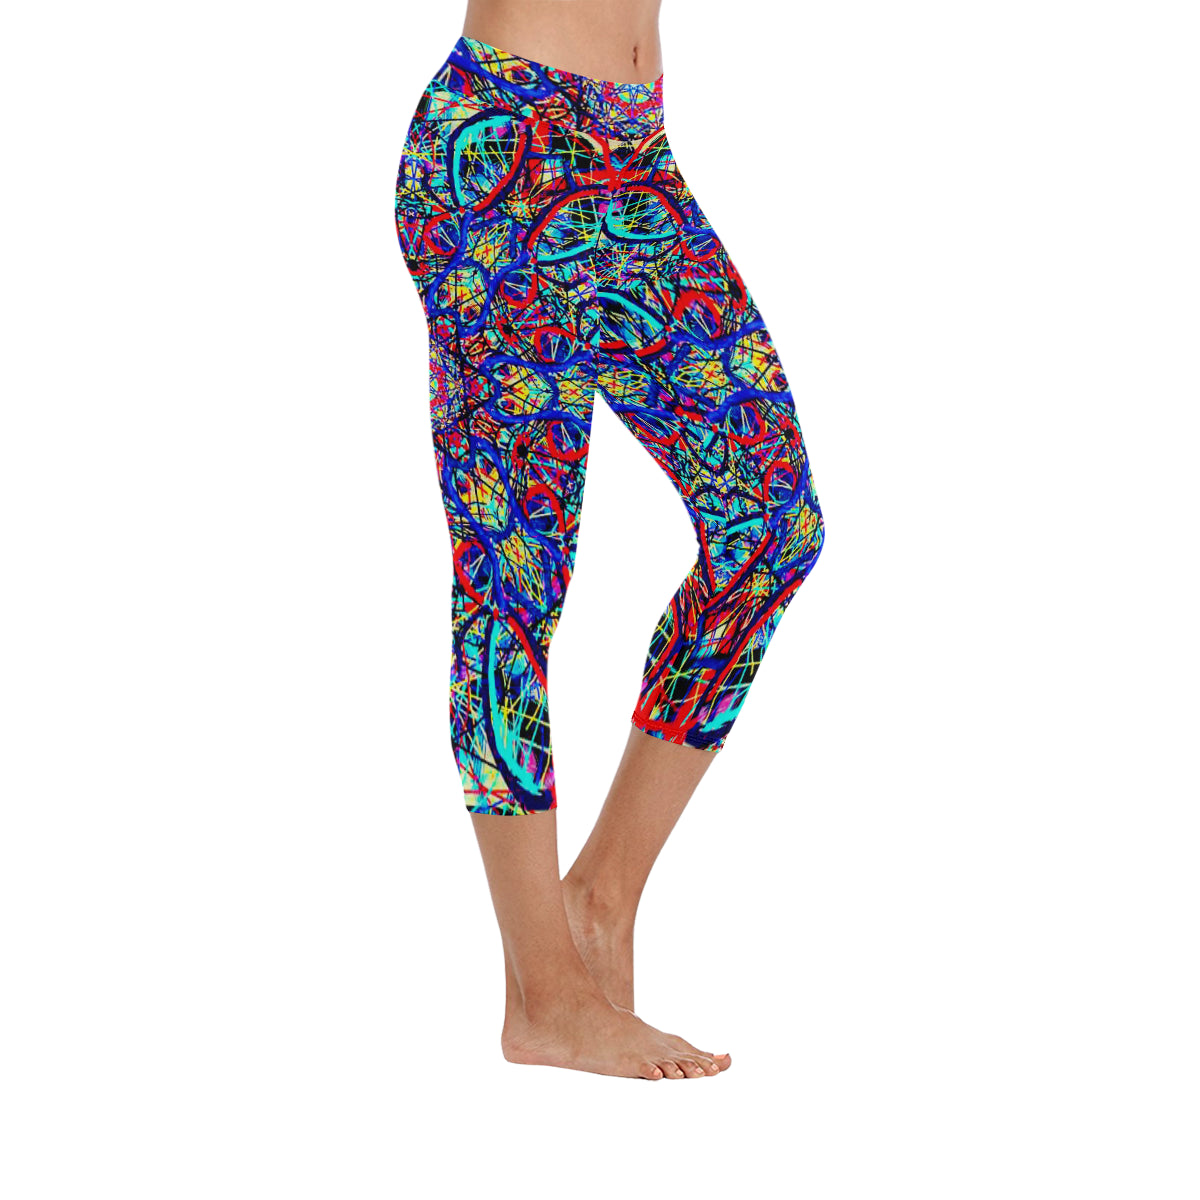 Thleudron Visha New Low Rise Capri Leggings (Flatlock Stitch) (Model L09) - Thleudron